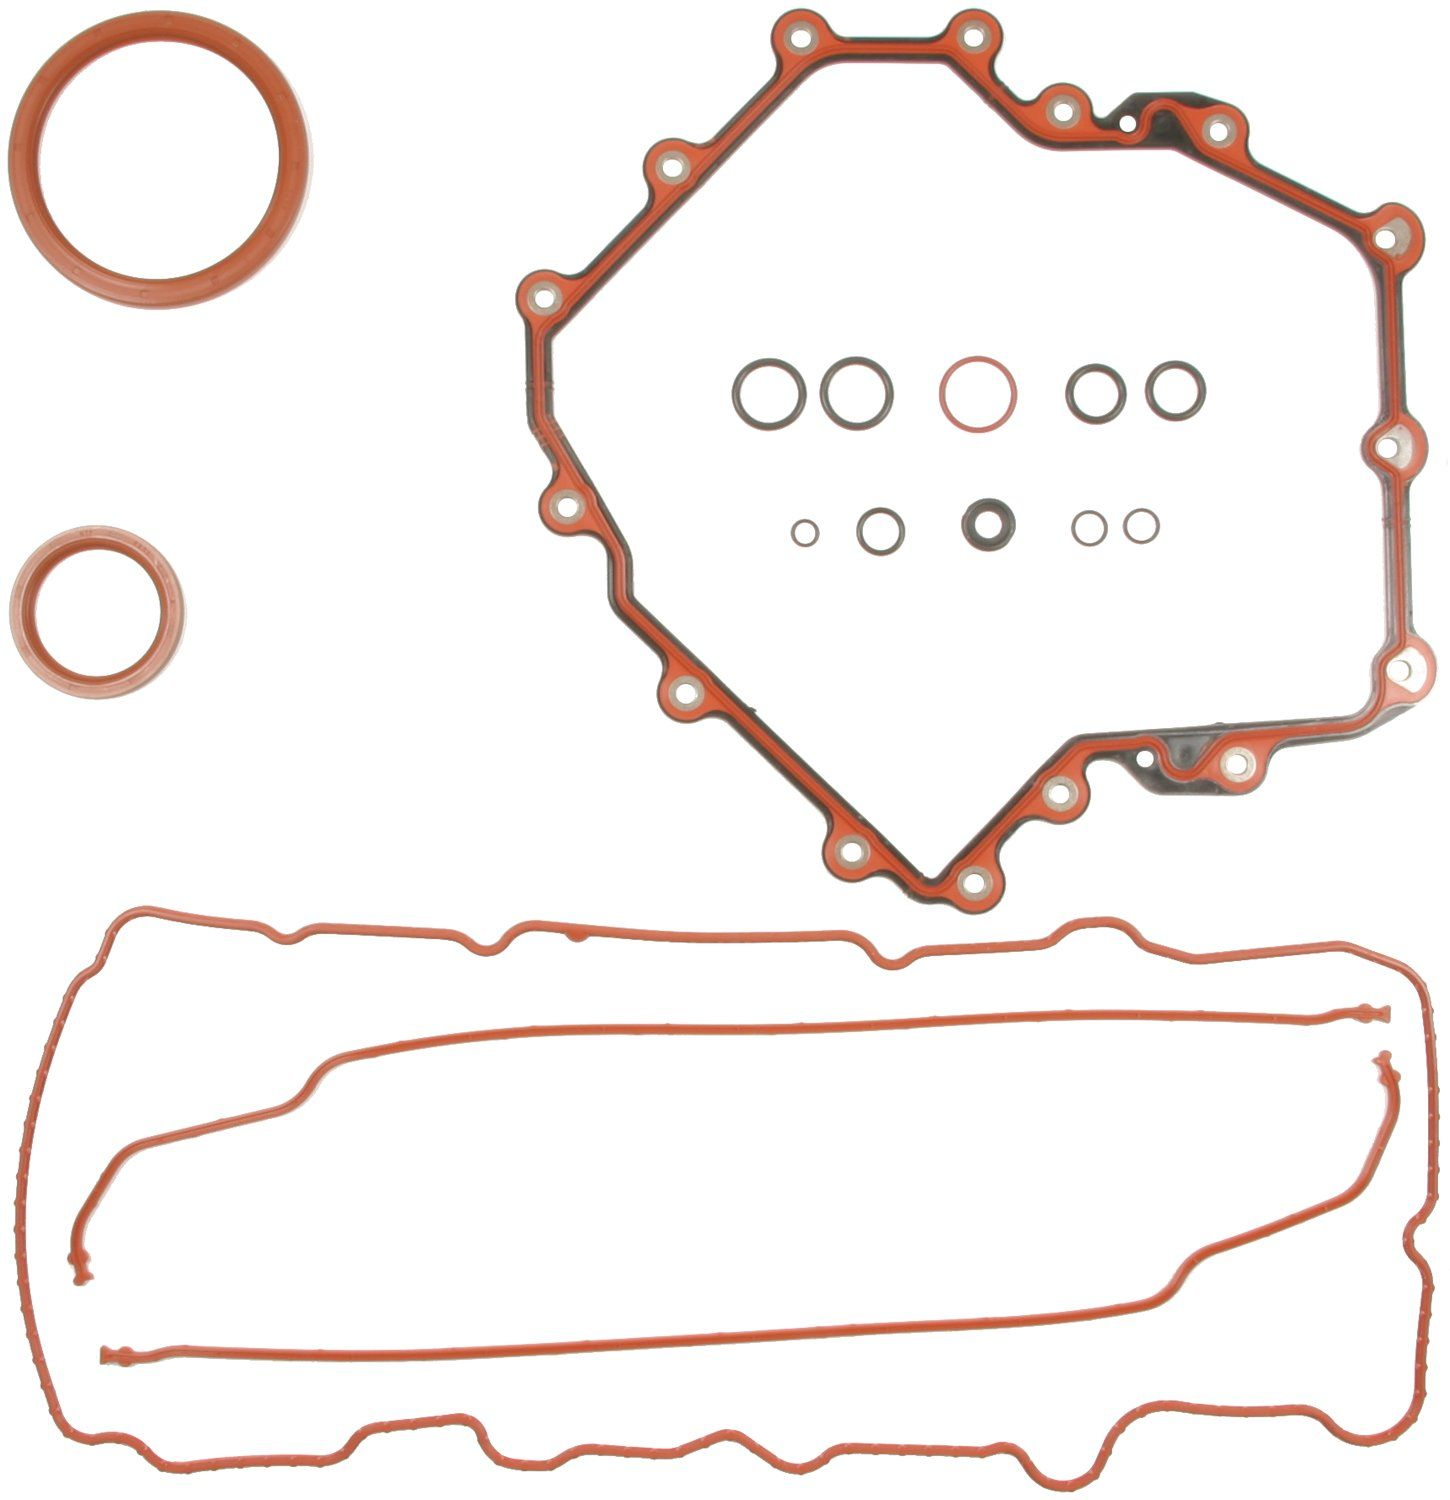 Cadillac Eldorado Engine Conversion Gasket Set Replacement Felpro 1997 Diagram 1993 8 Cyl 46l Victor Gaskets Cs54356 Use With Head To Make Full